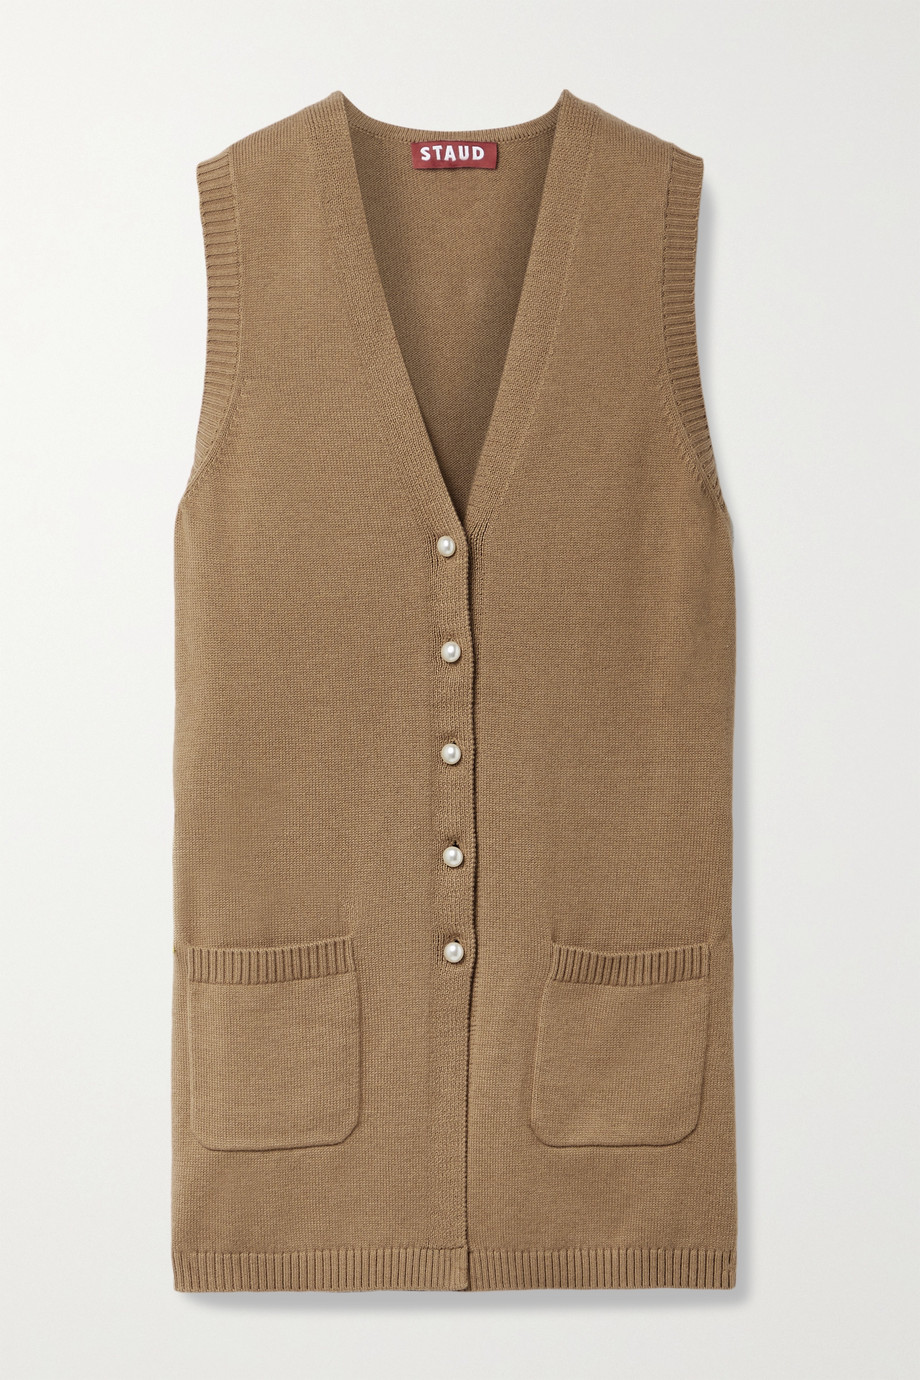 STAUD Jo cotton-blend vest